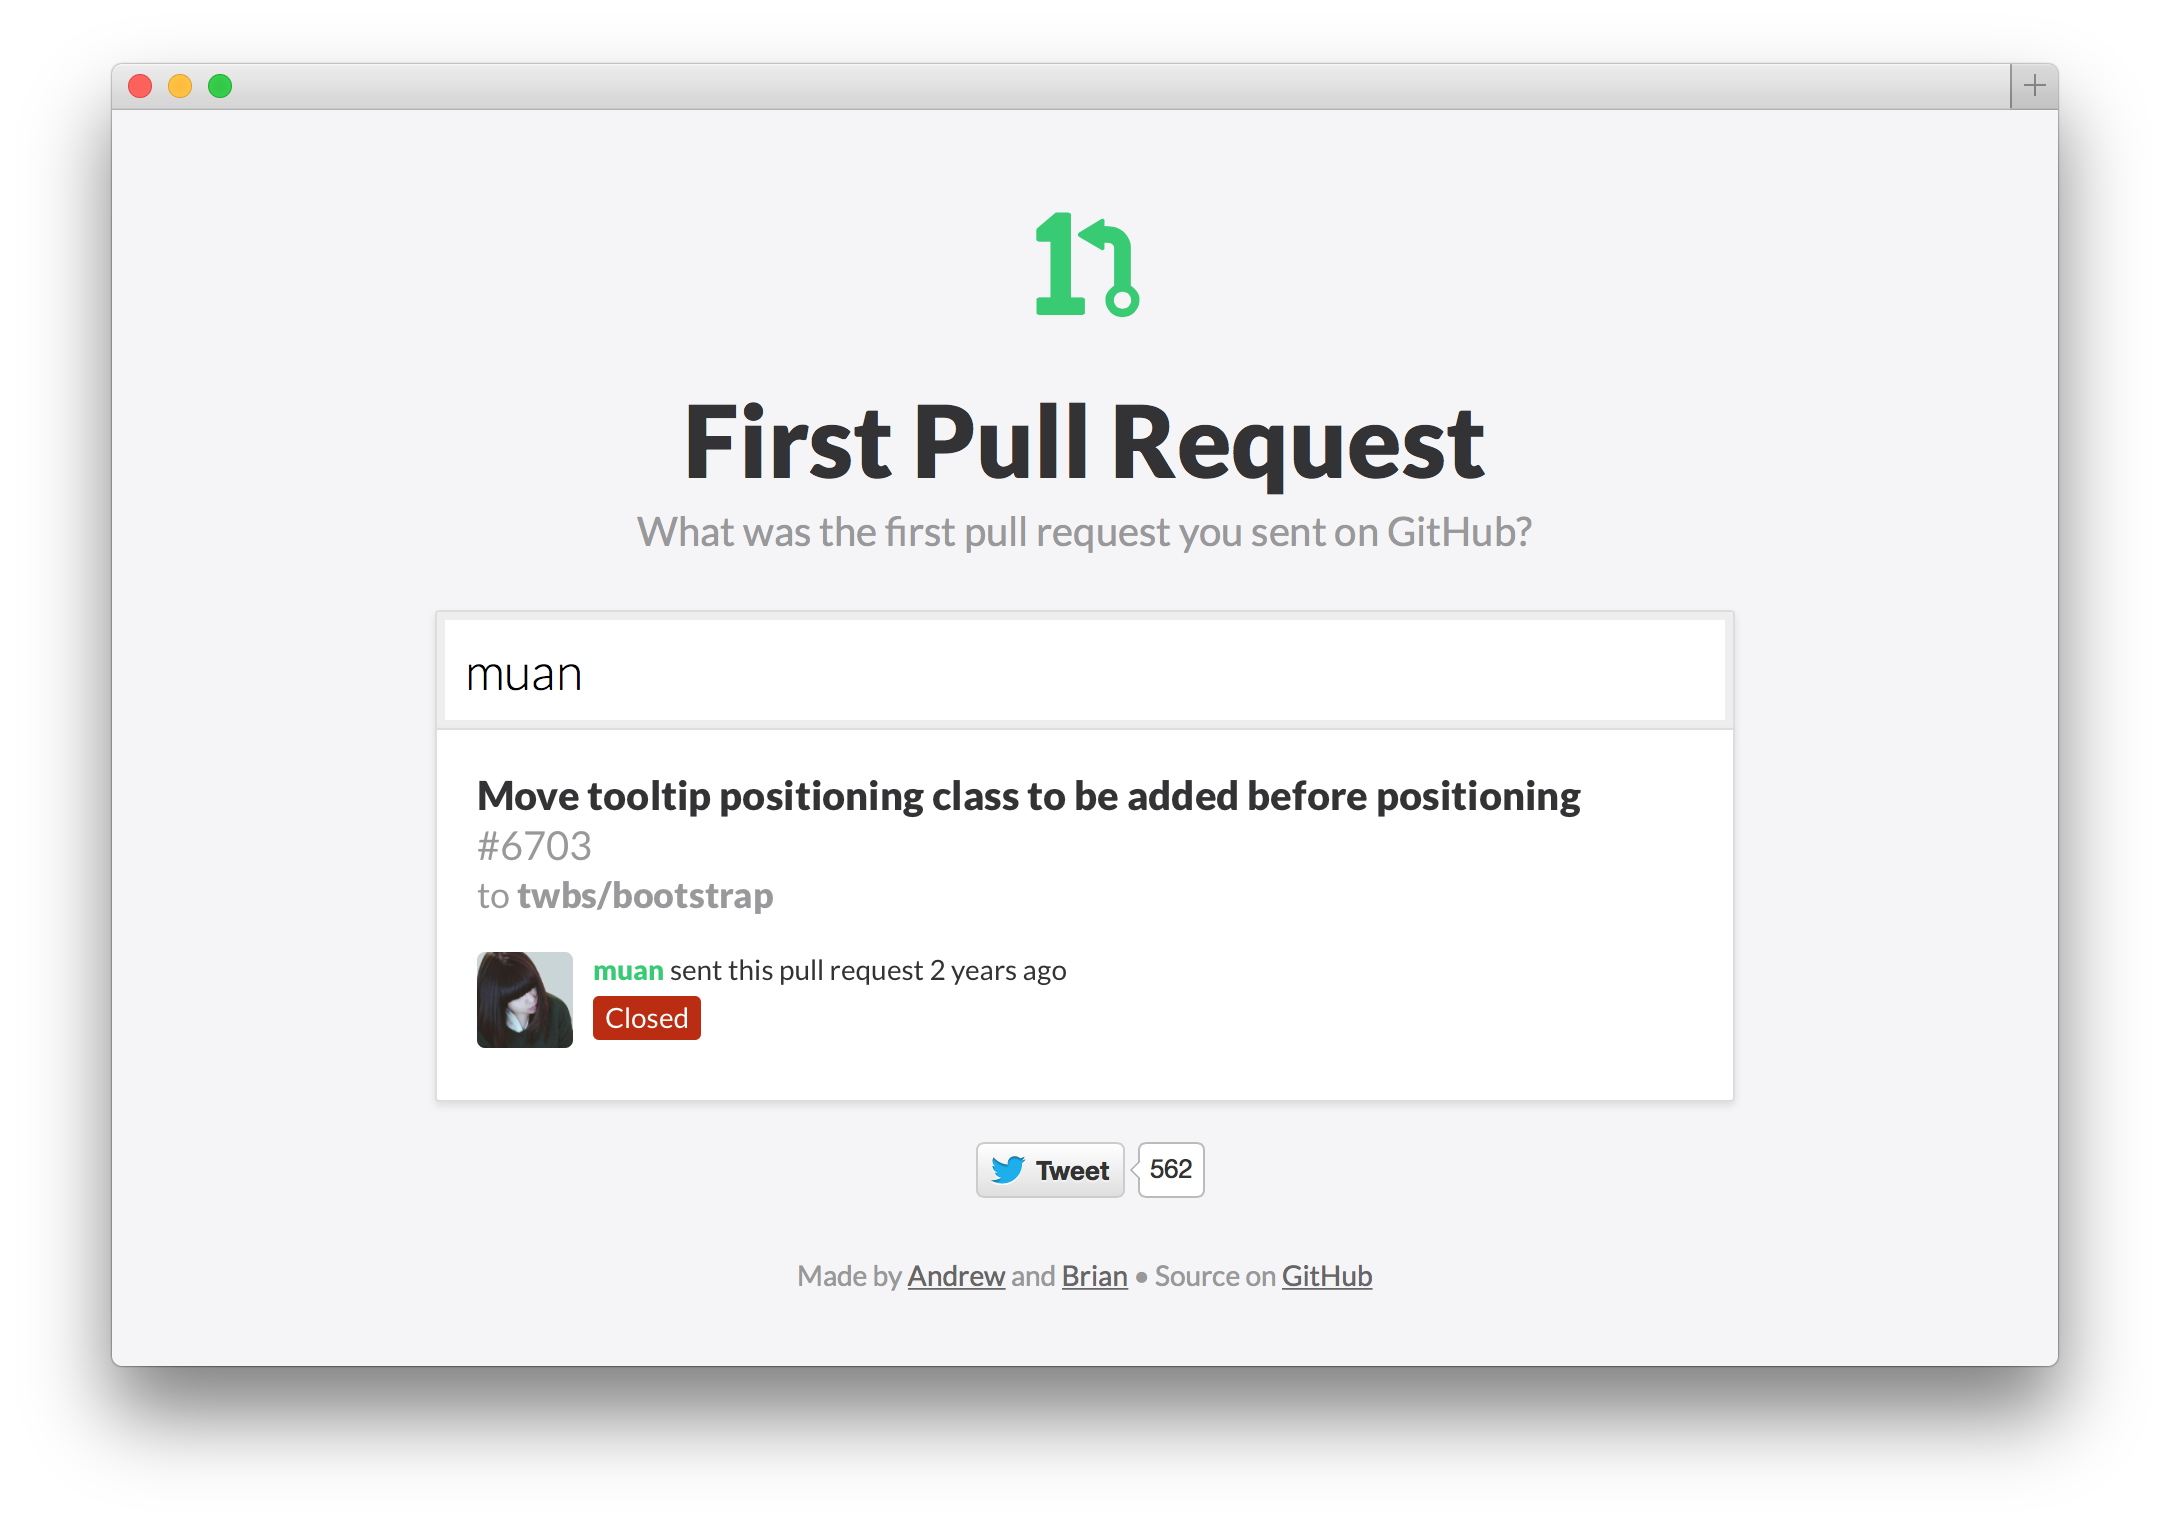 My first pull request as found on http://firstpr.me/#muan